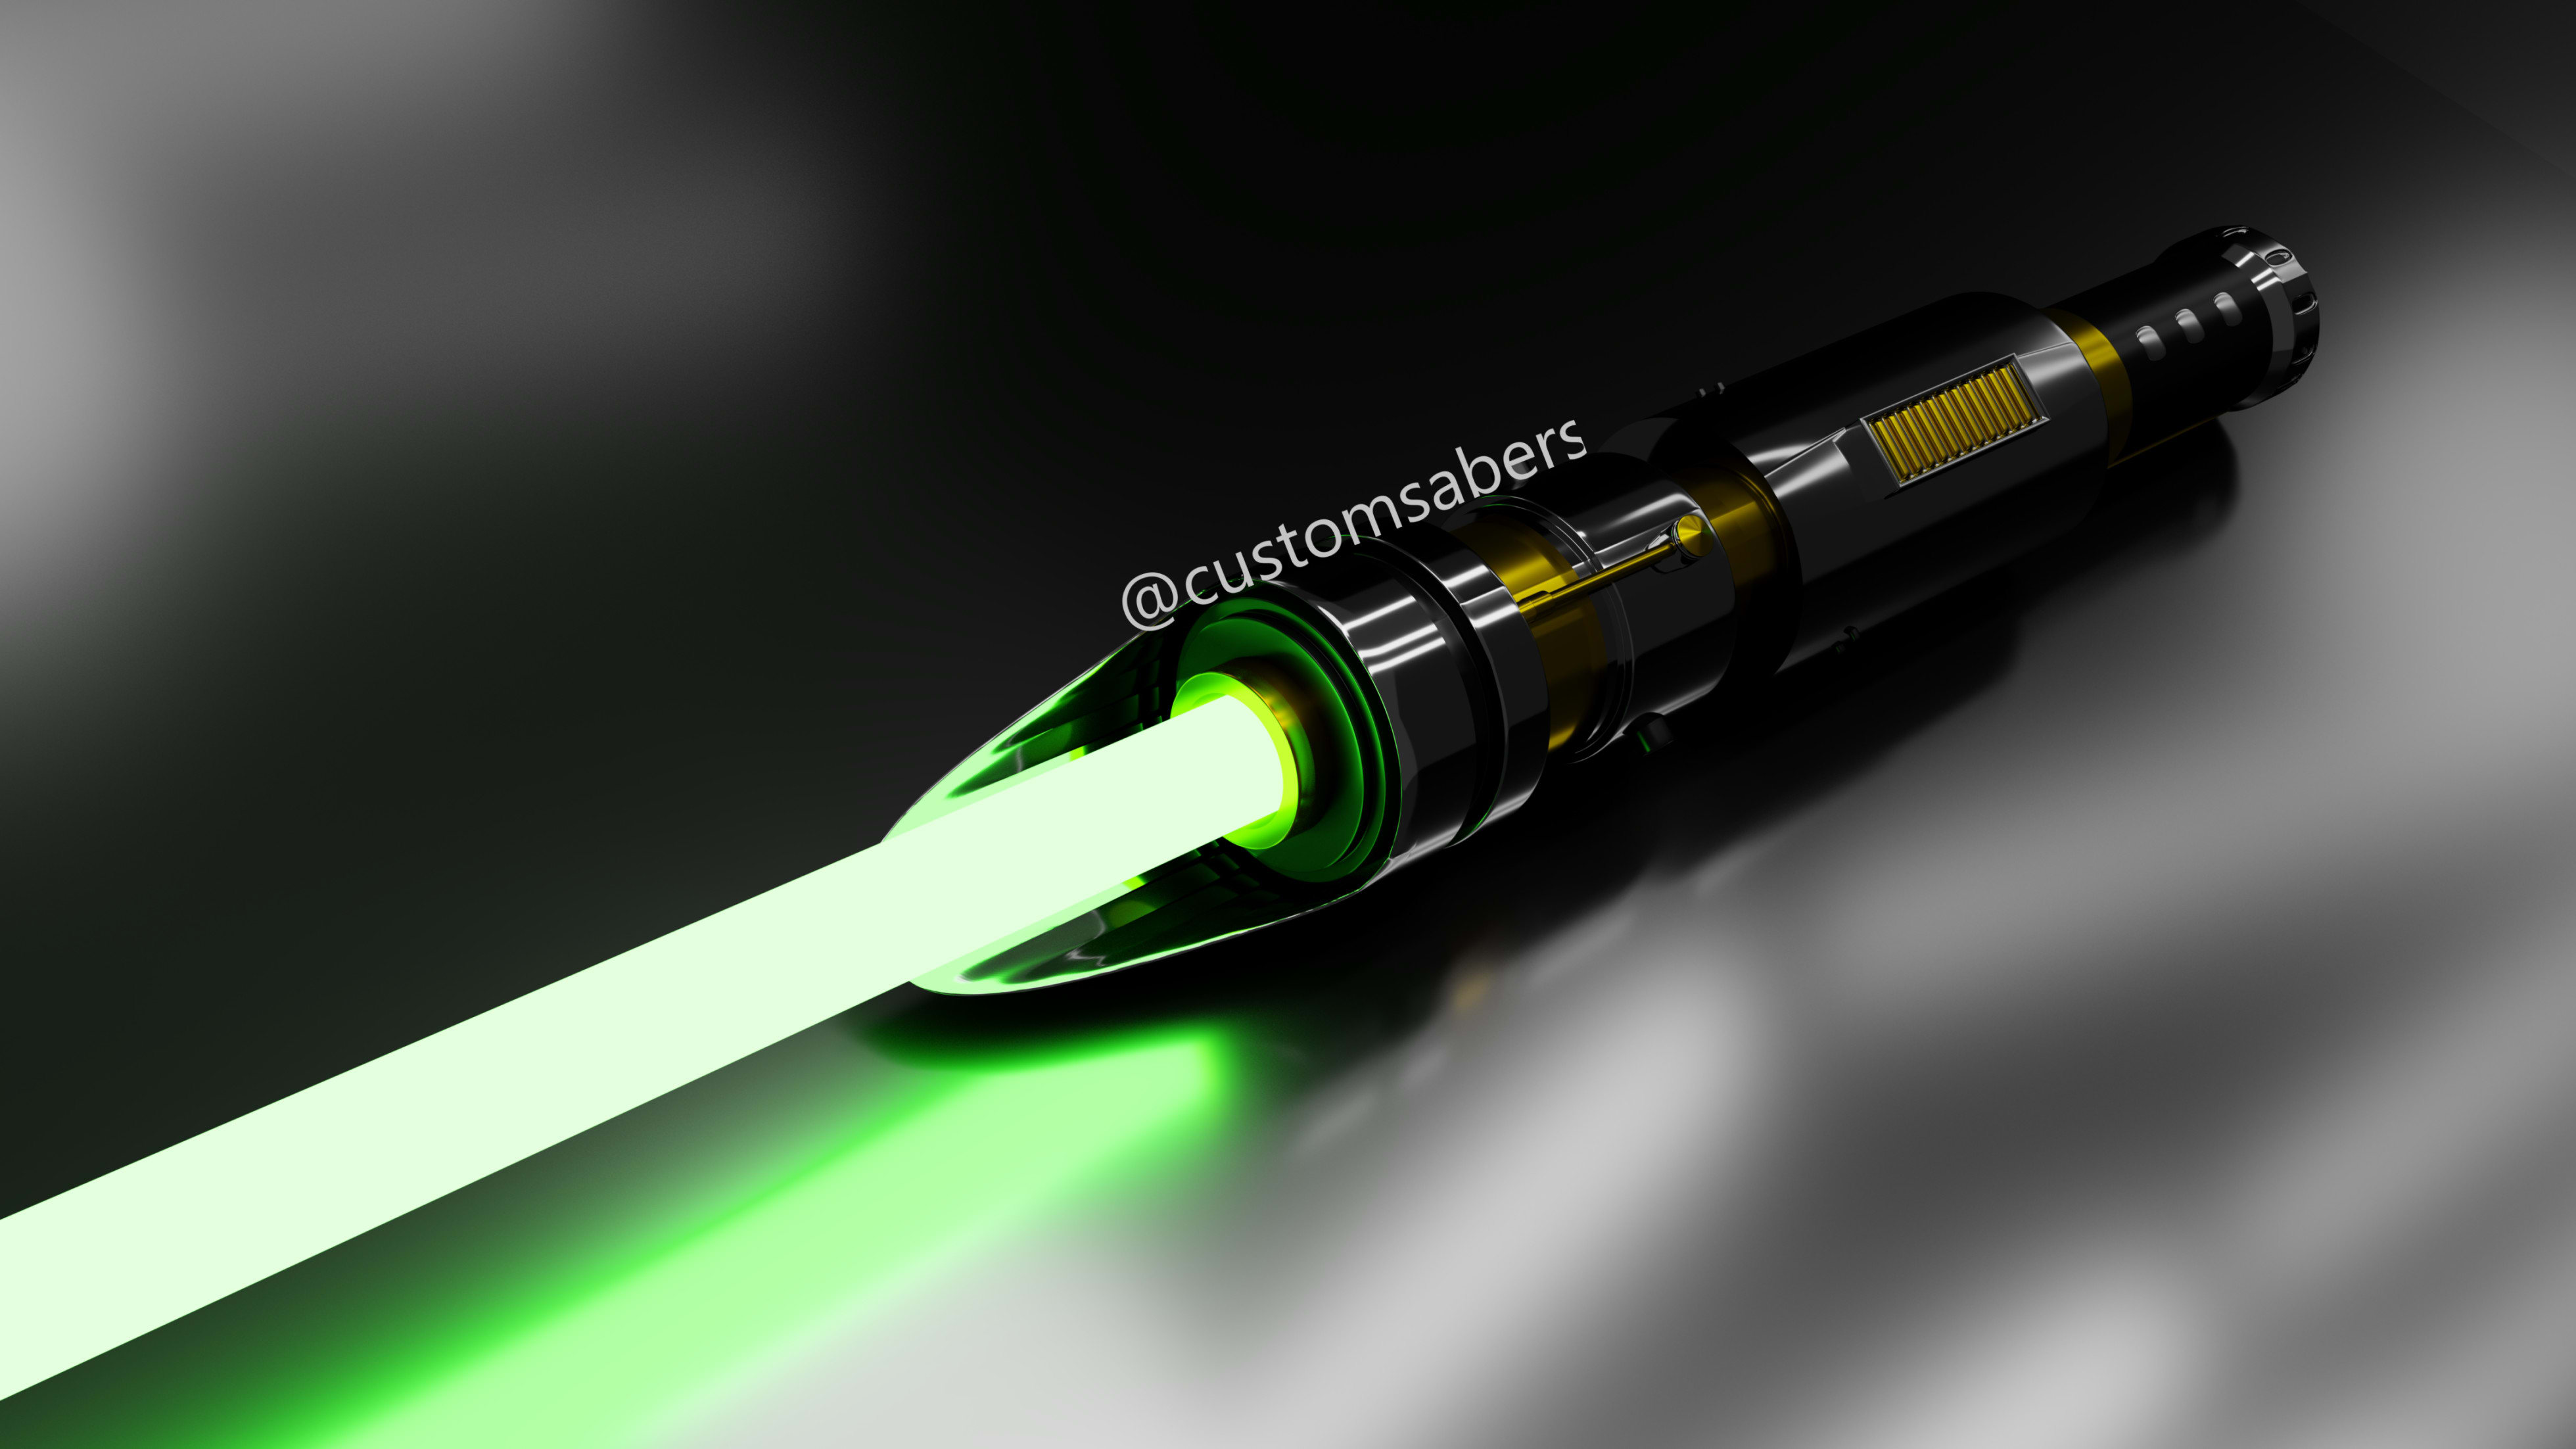 Create A Custom Star Wars Light Saber Wallpaper For You By Customsabers